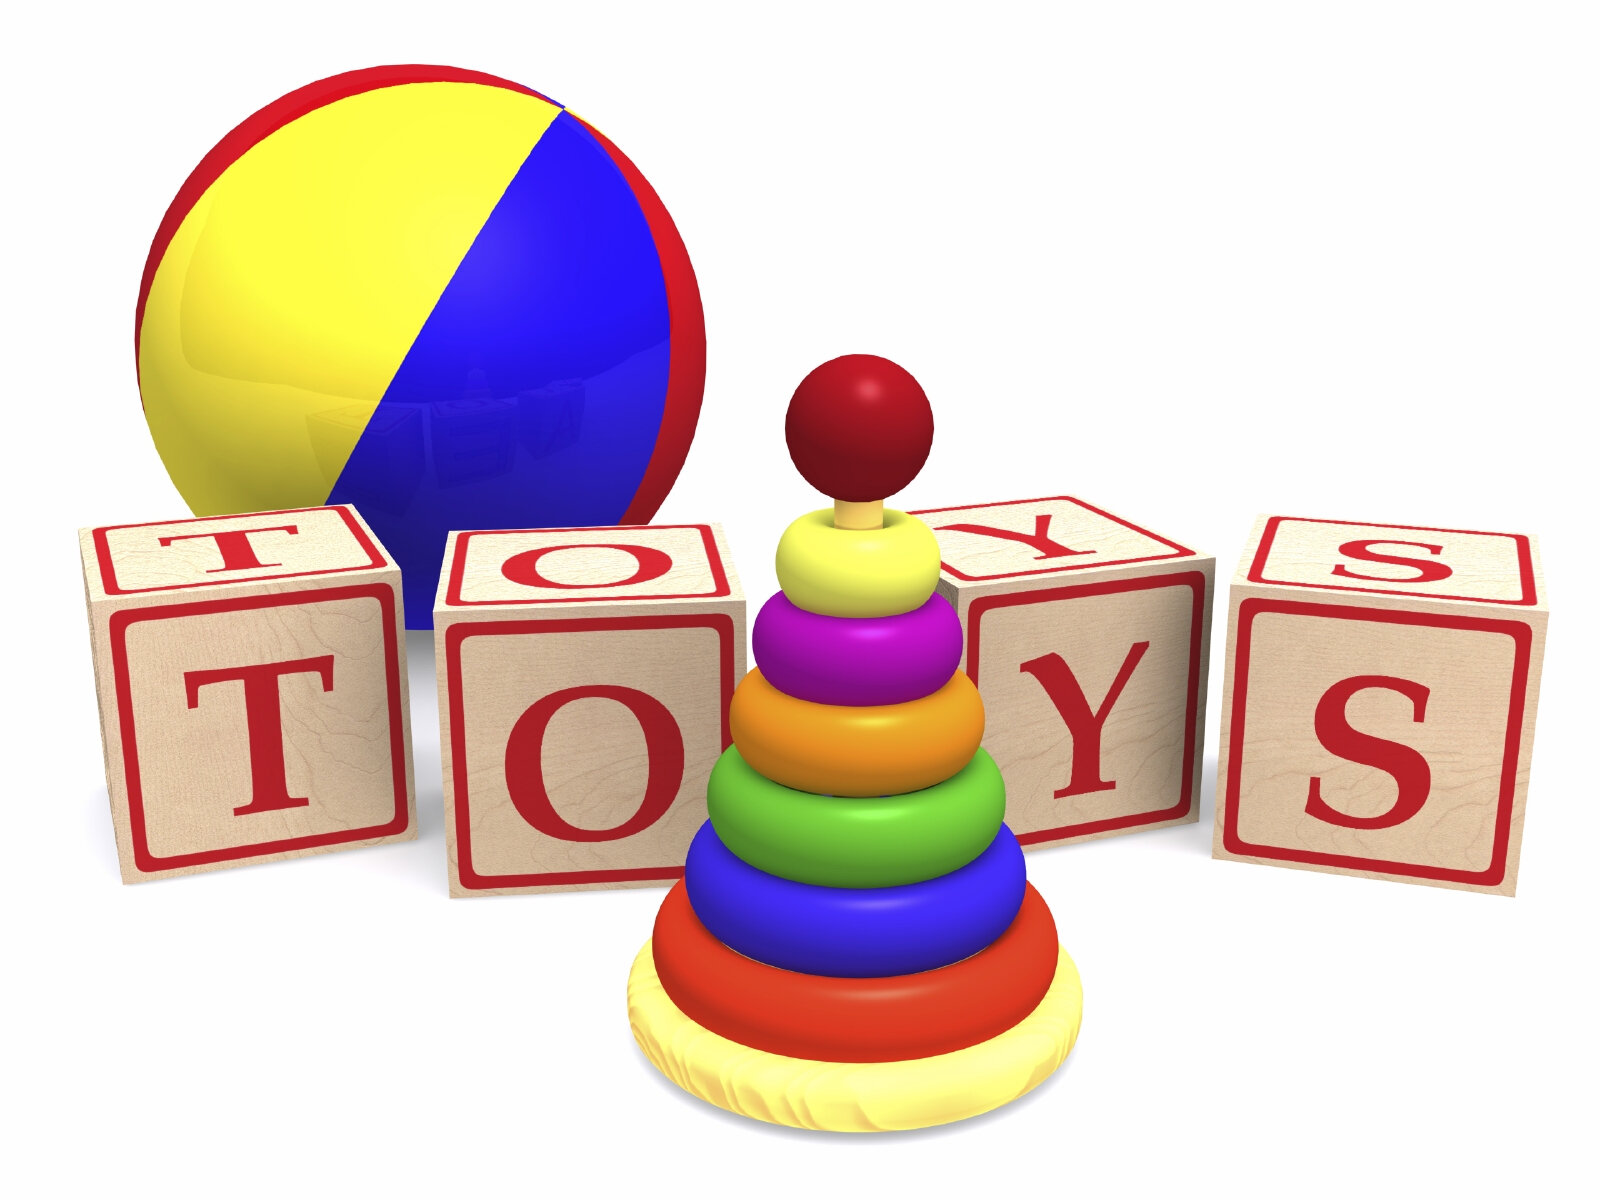 the salvation army is running low on toys for its christmas toy distribution scheduled for friday december 19th volunteers have bagged toys for about - Toy Donations For Christmas